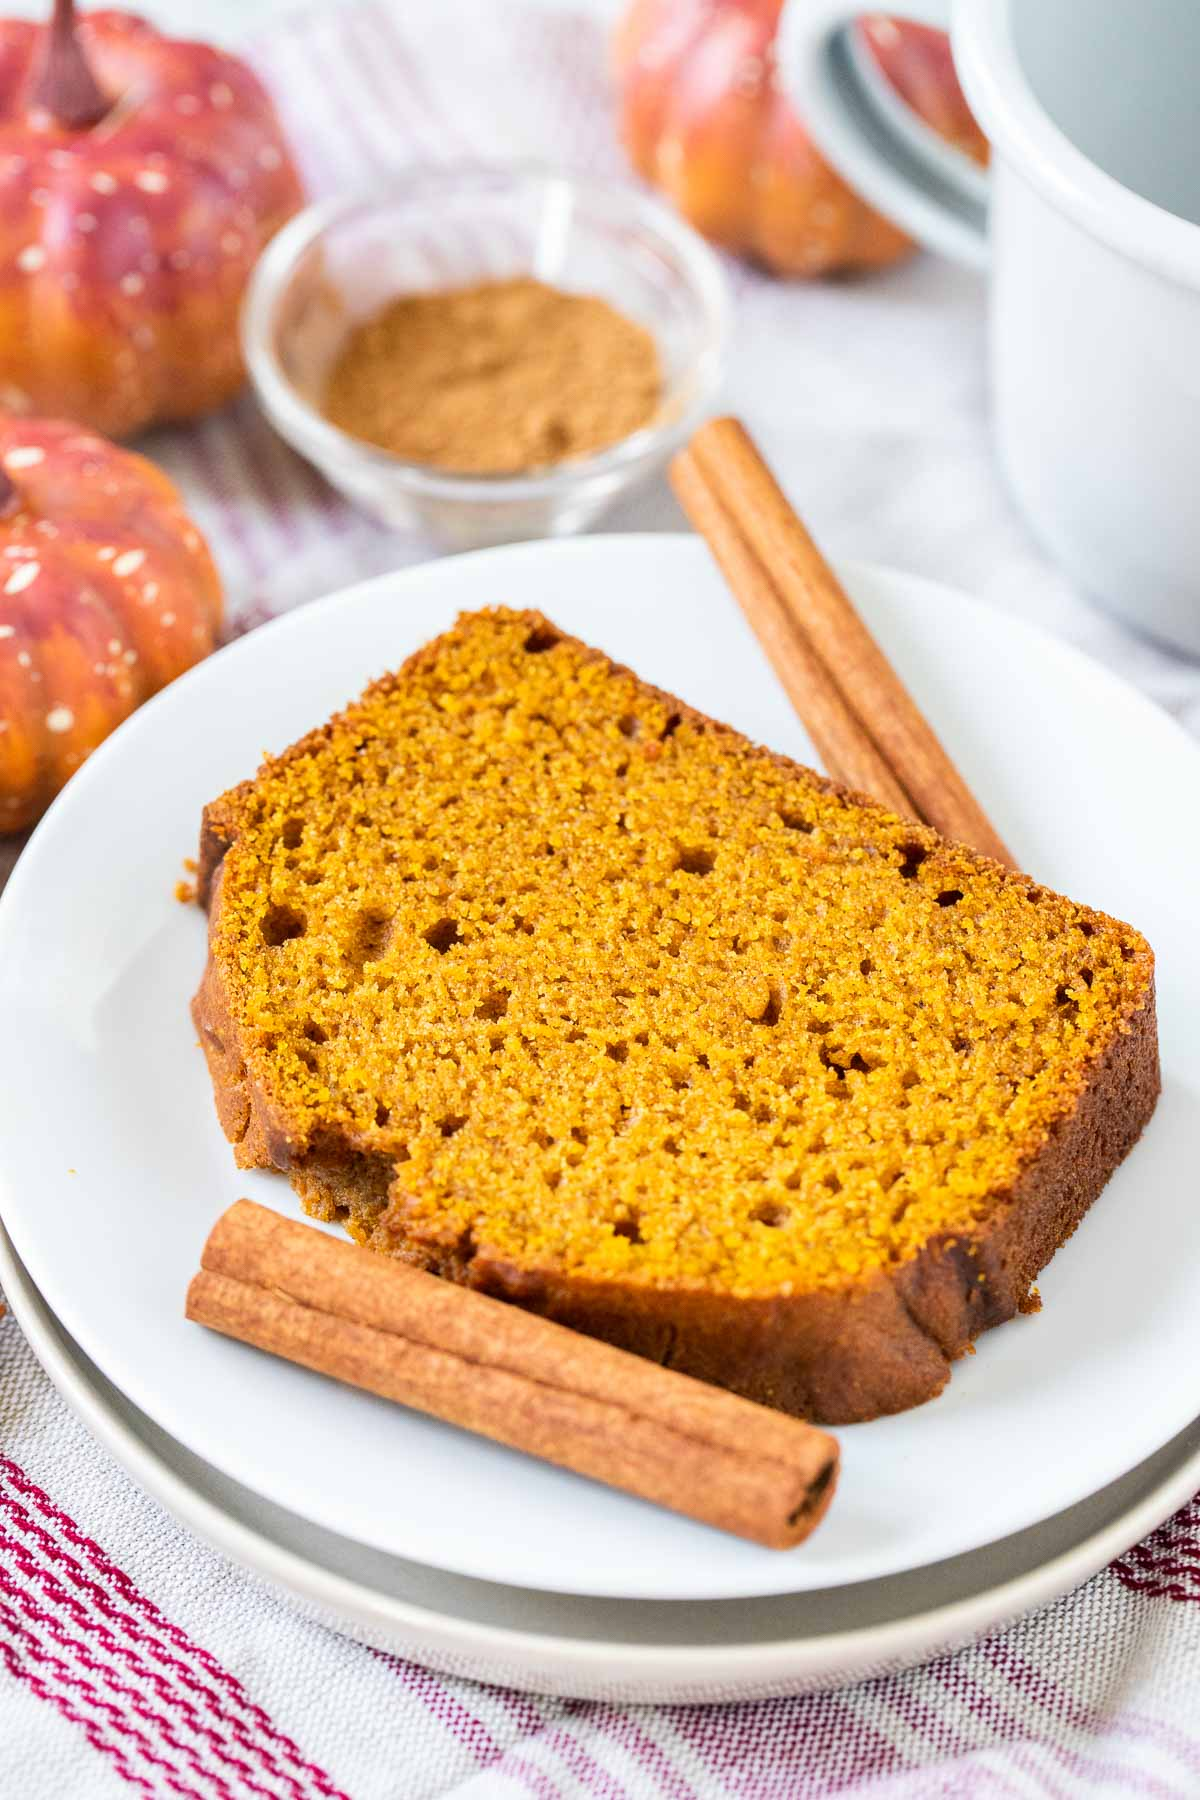 A slice of pumpkin bread on a plate